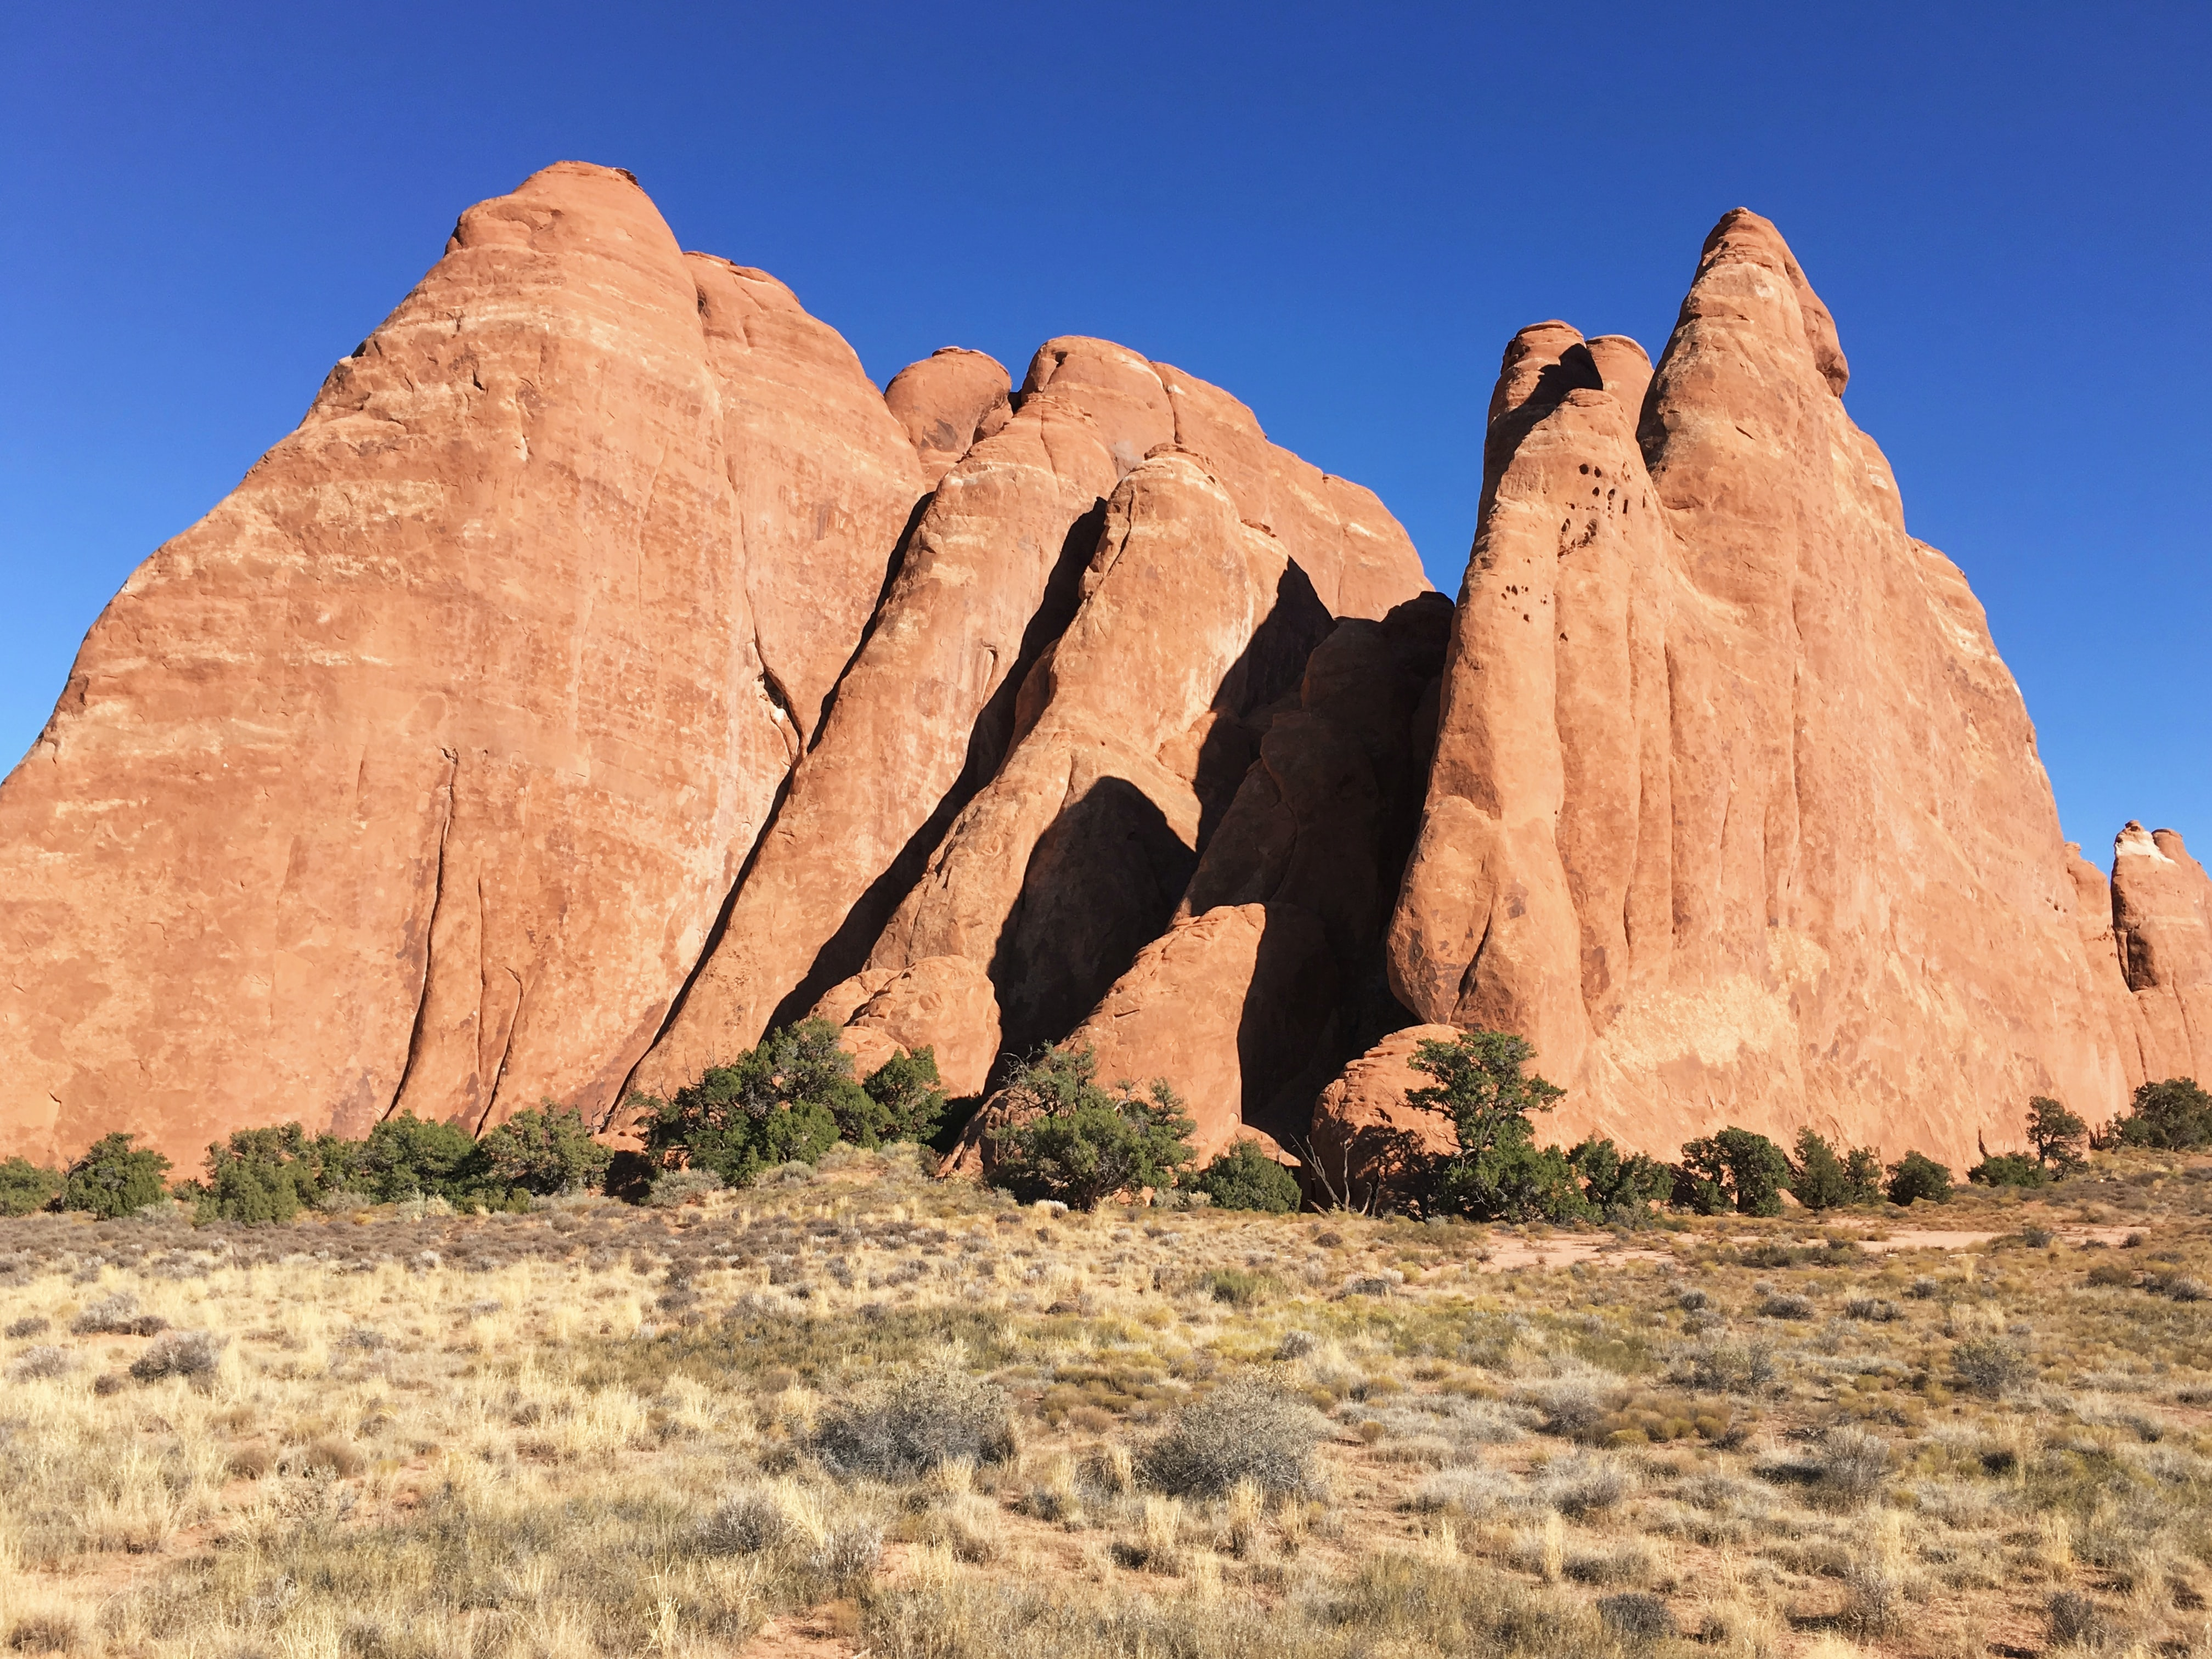 Red rock outcroppings against blue sky